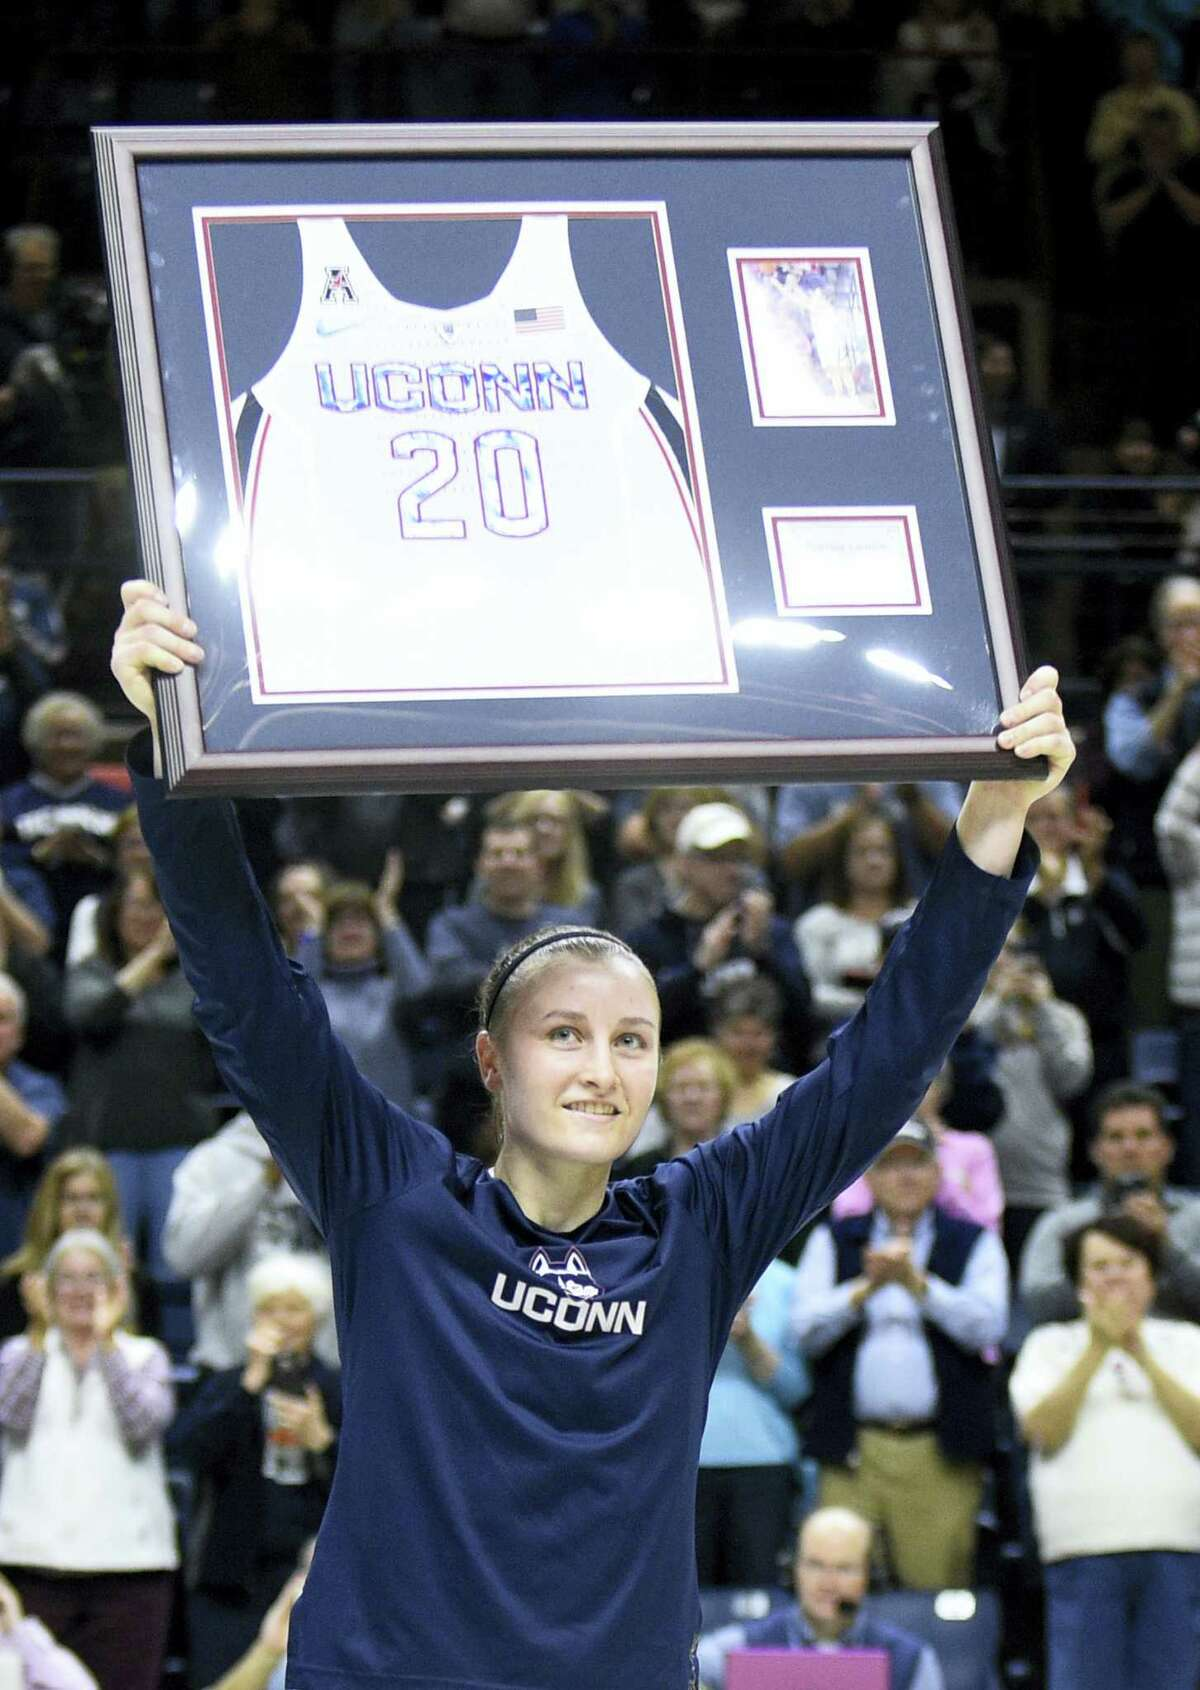 UConn's Tierney Lawlor holds aloft a plague with her jersey number on Saturday.